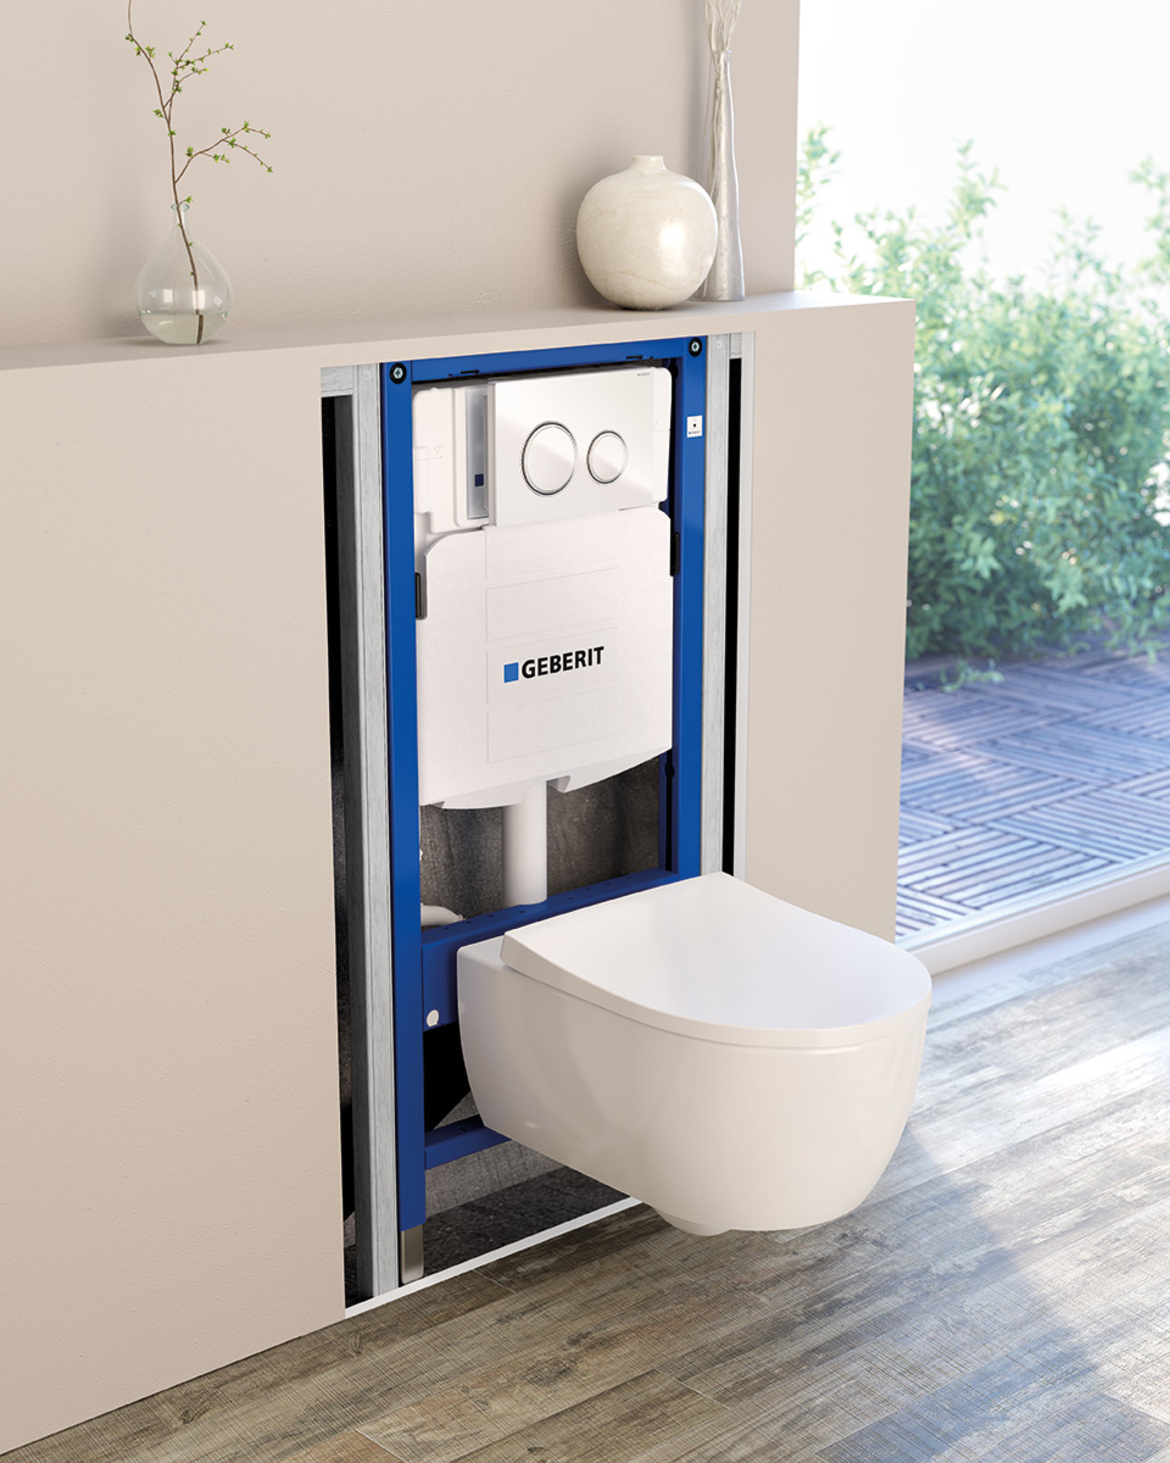 In wall systems for bathroom fixtures geberit north america for Geberit products